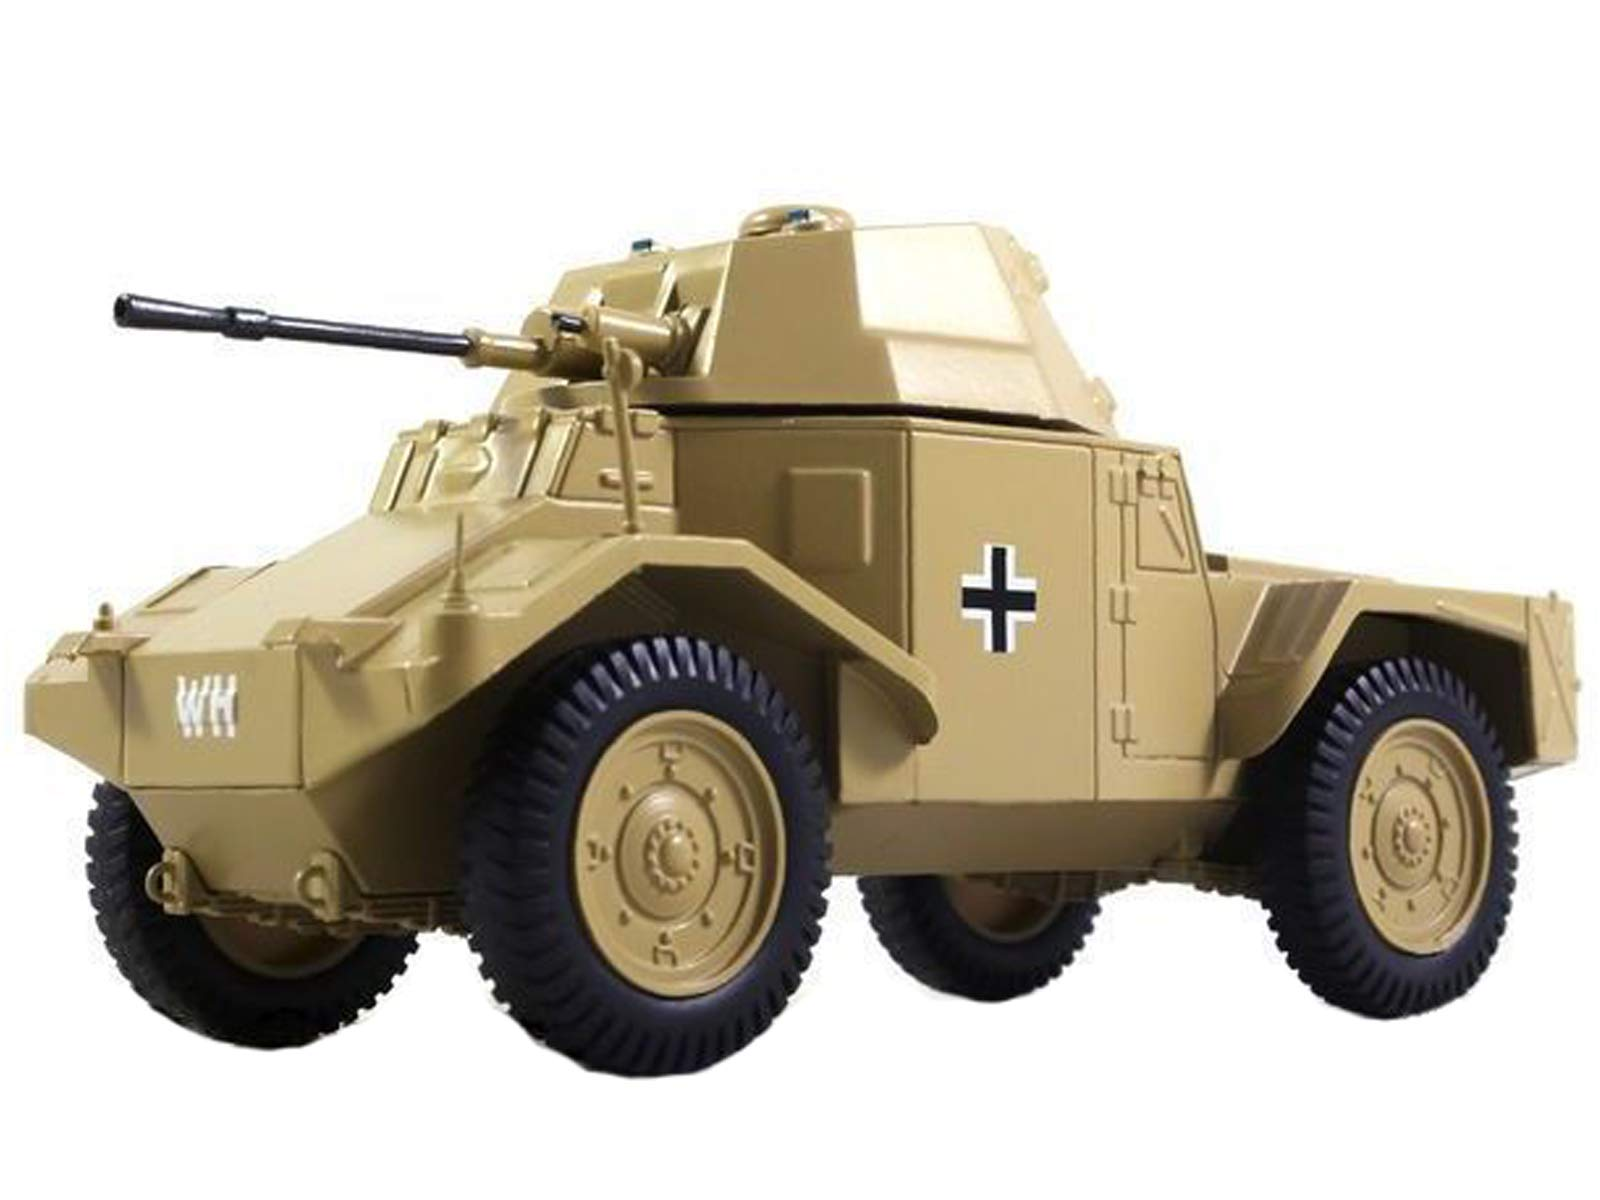 Pz. Spahwagen P204 1944 Year French Armoured Car 1/43 Collectible Model Vehicle All-Wheel-Drive Car by French Motor Vehicle Manufacturer Panhard